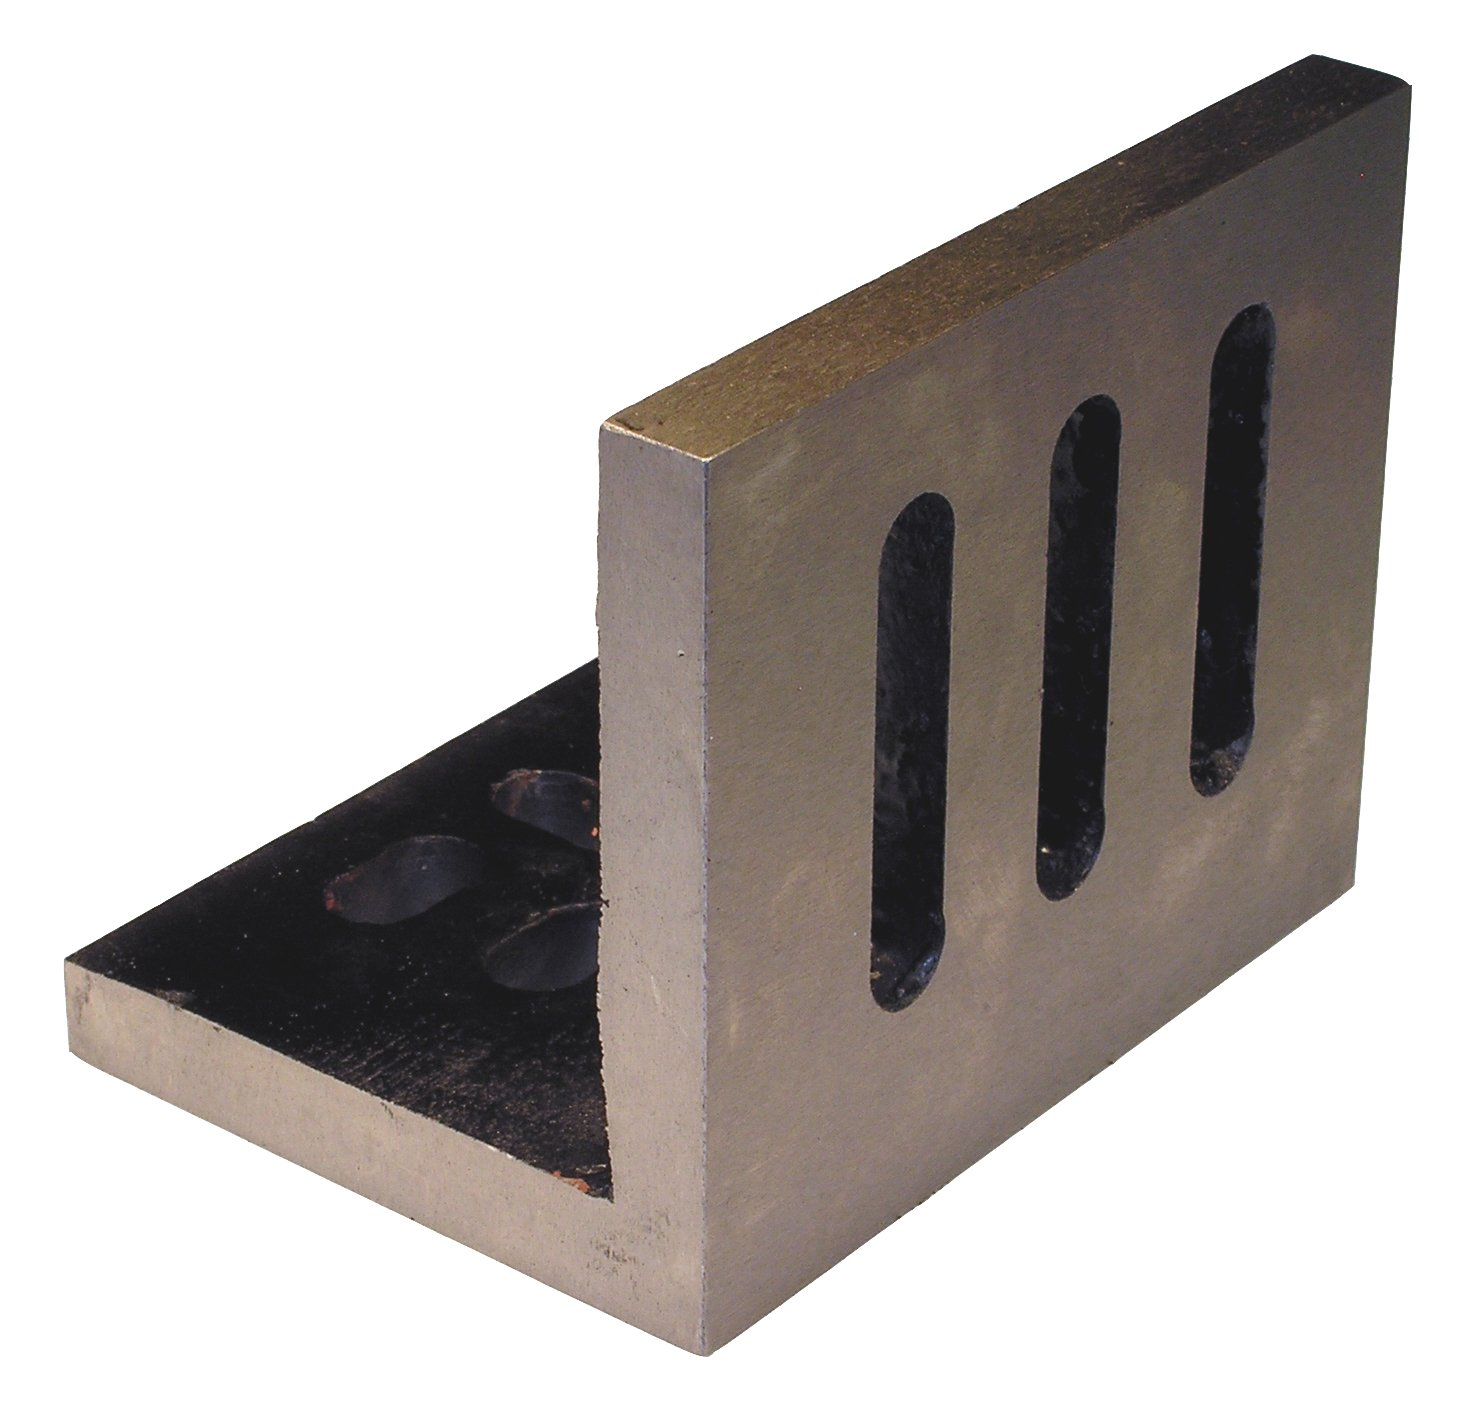 Value Line 9 x 7 x 6 Slotted Angle Plate - Open - Machined by Suburban Tool